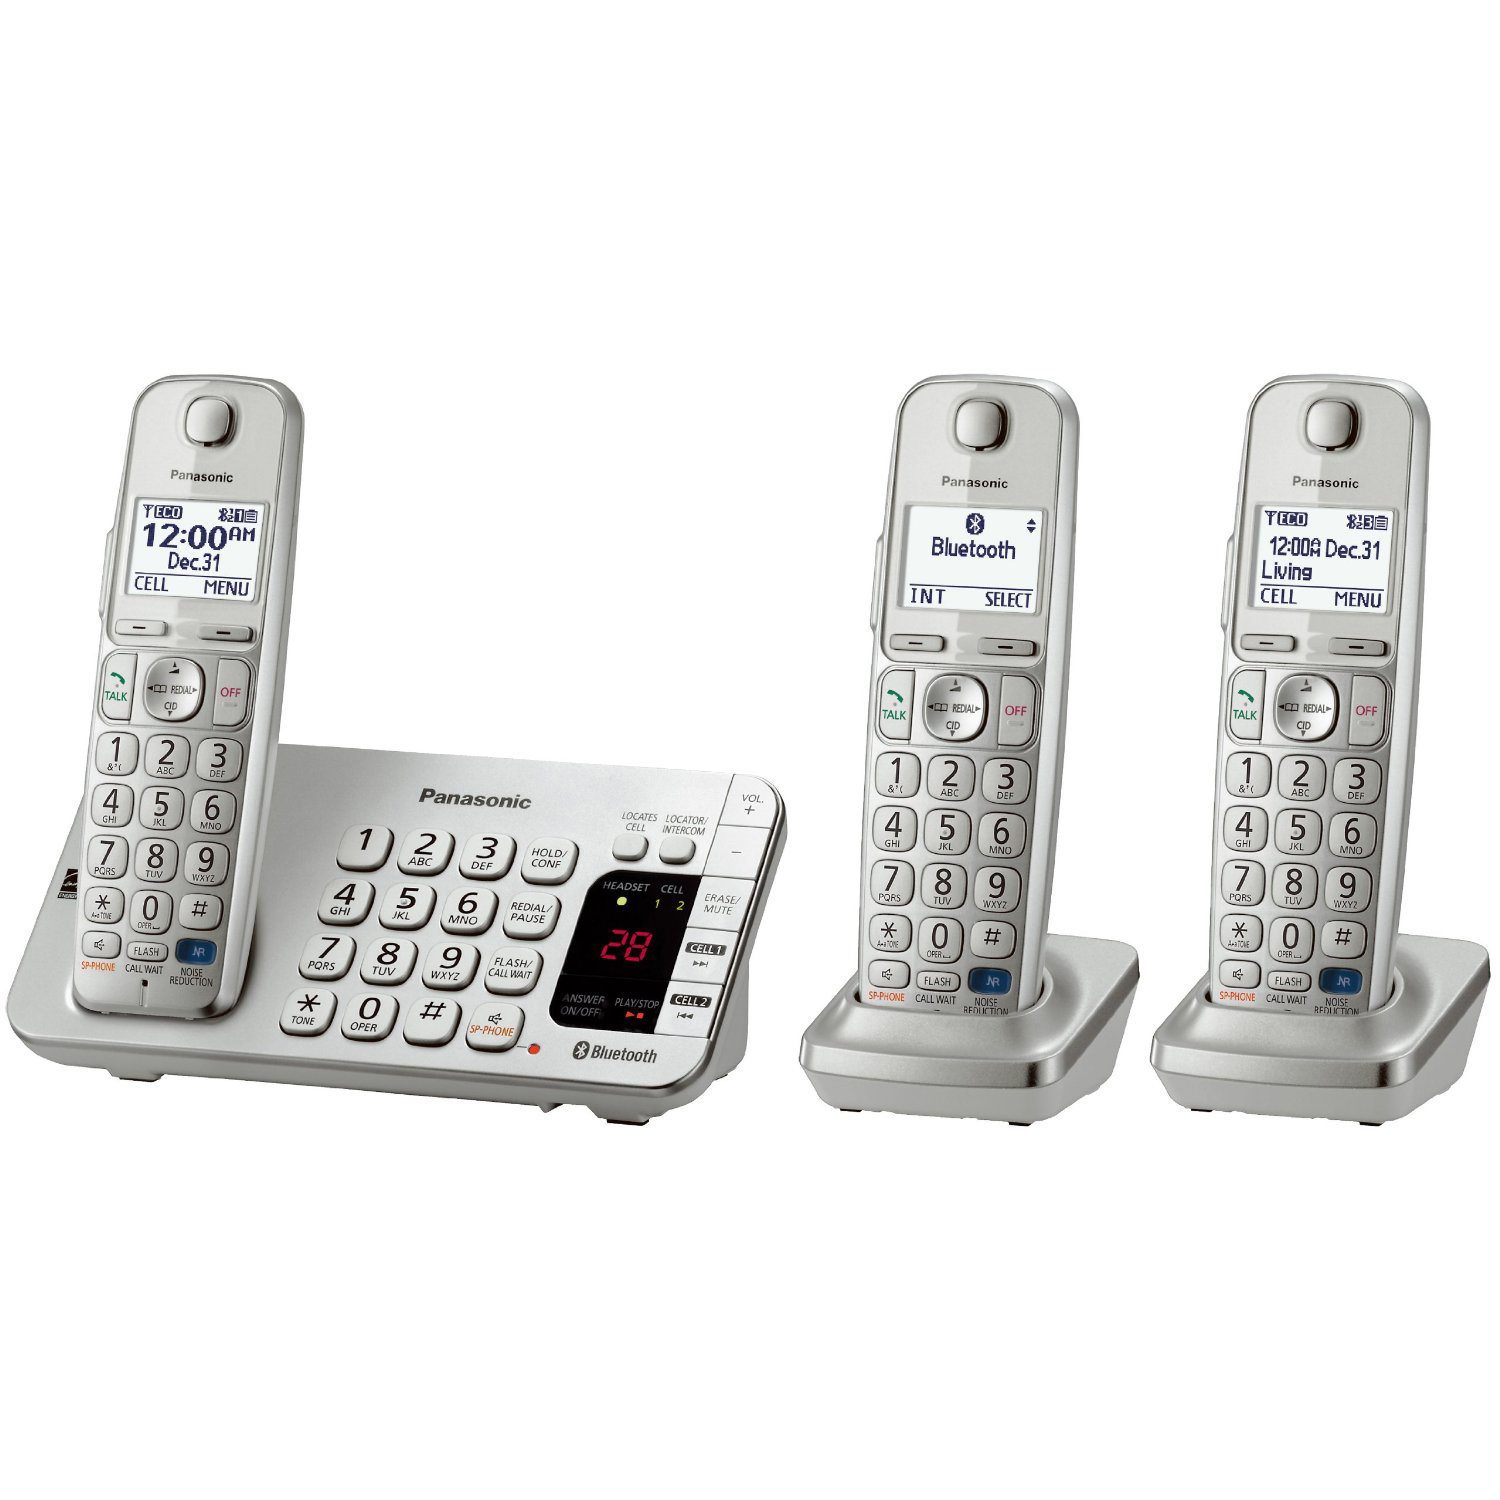 Panasonic Silver Link2Cell™ Bluetooth®-Enabled Phone with Answering Machine and 3 Cordless Handsets PartNumber: 00355385000P KsnValue: 8025569 MfgPartNumber: KX-TGE273S